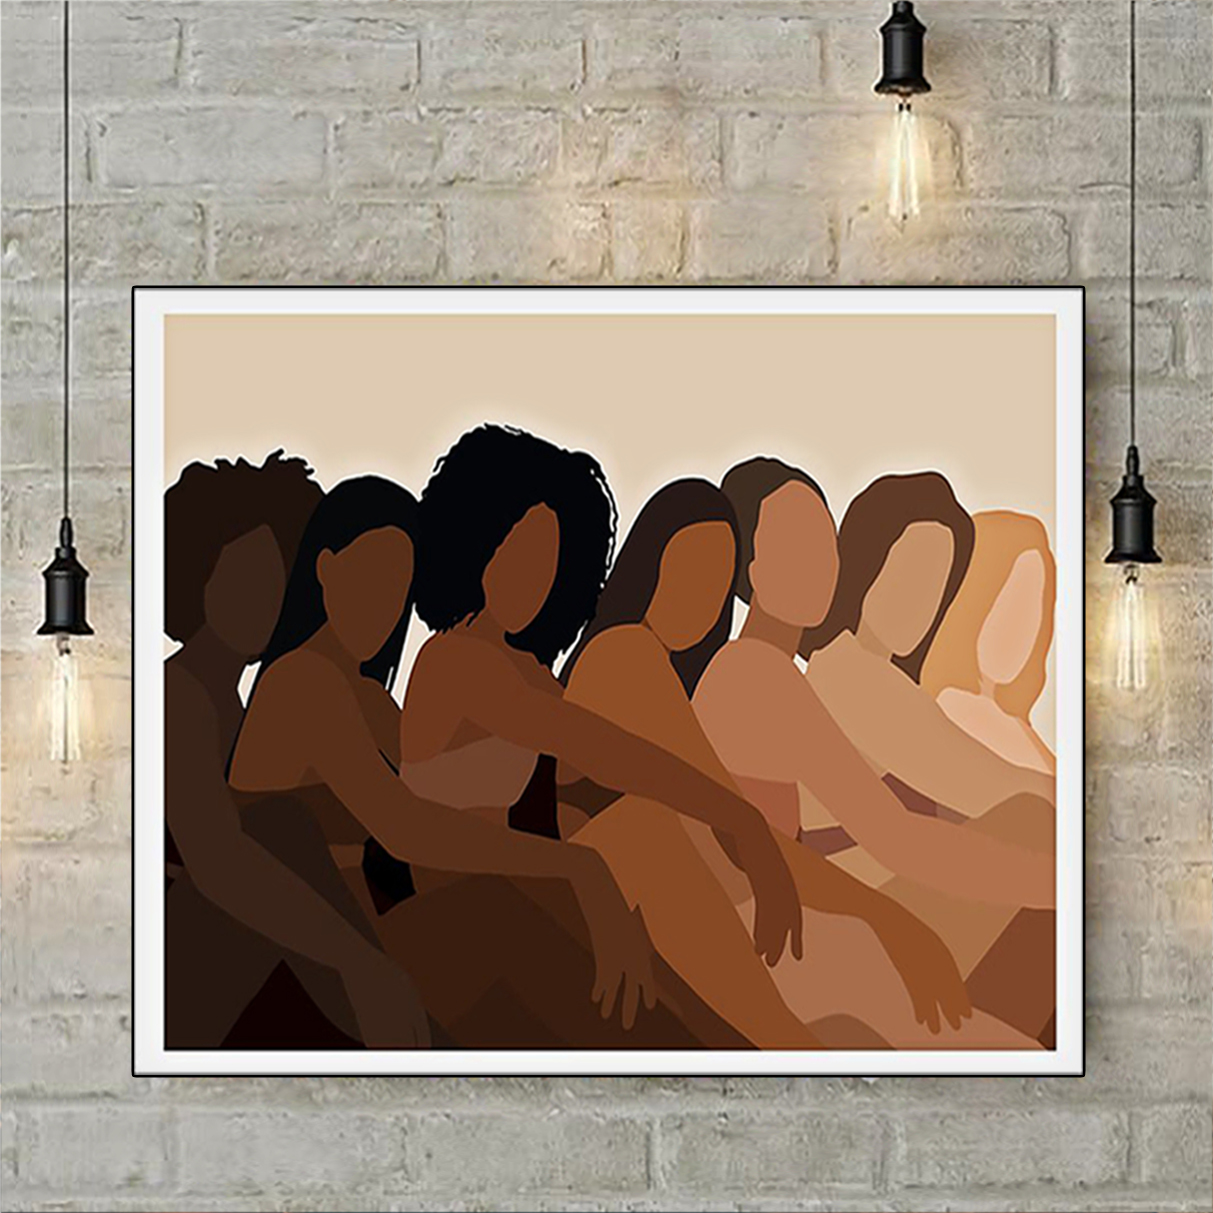 Melanin black woman poster A1